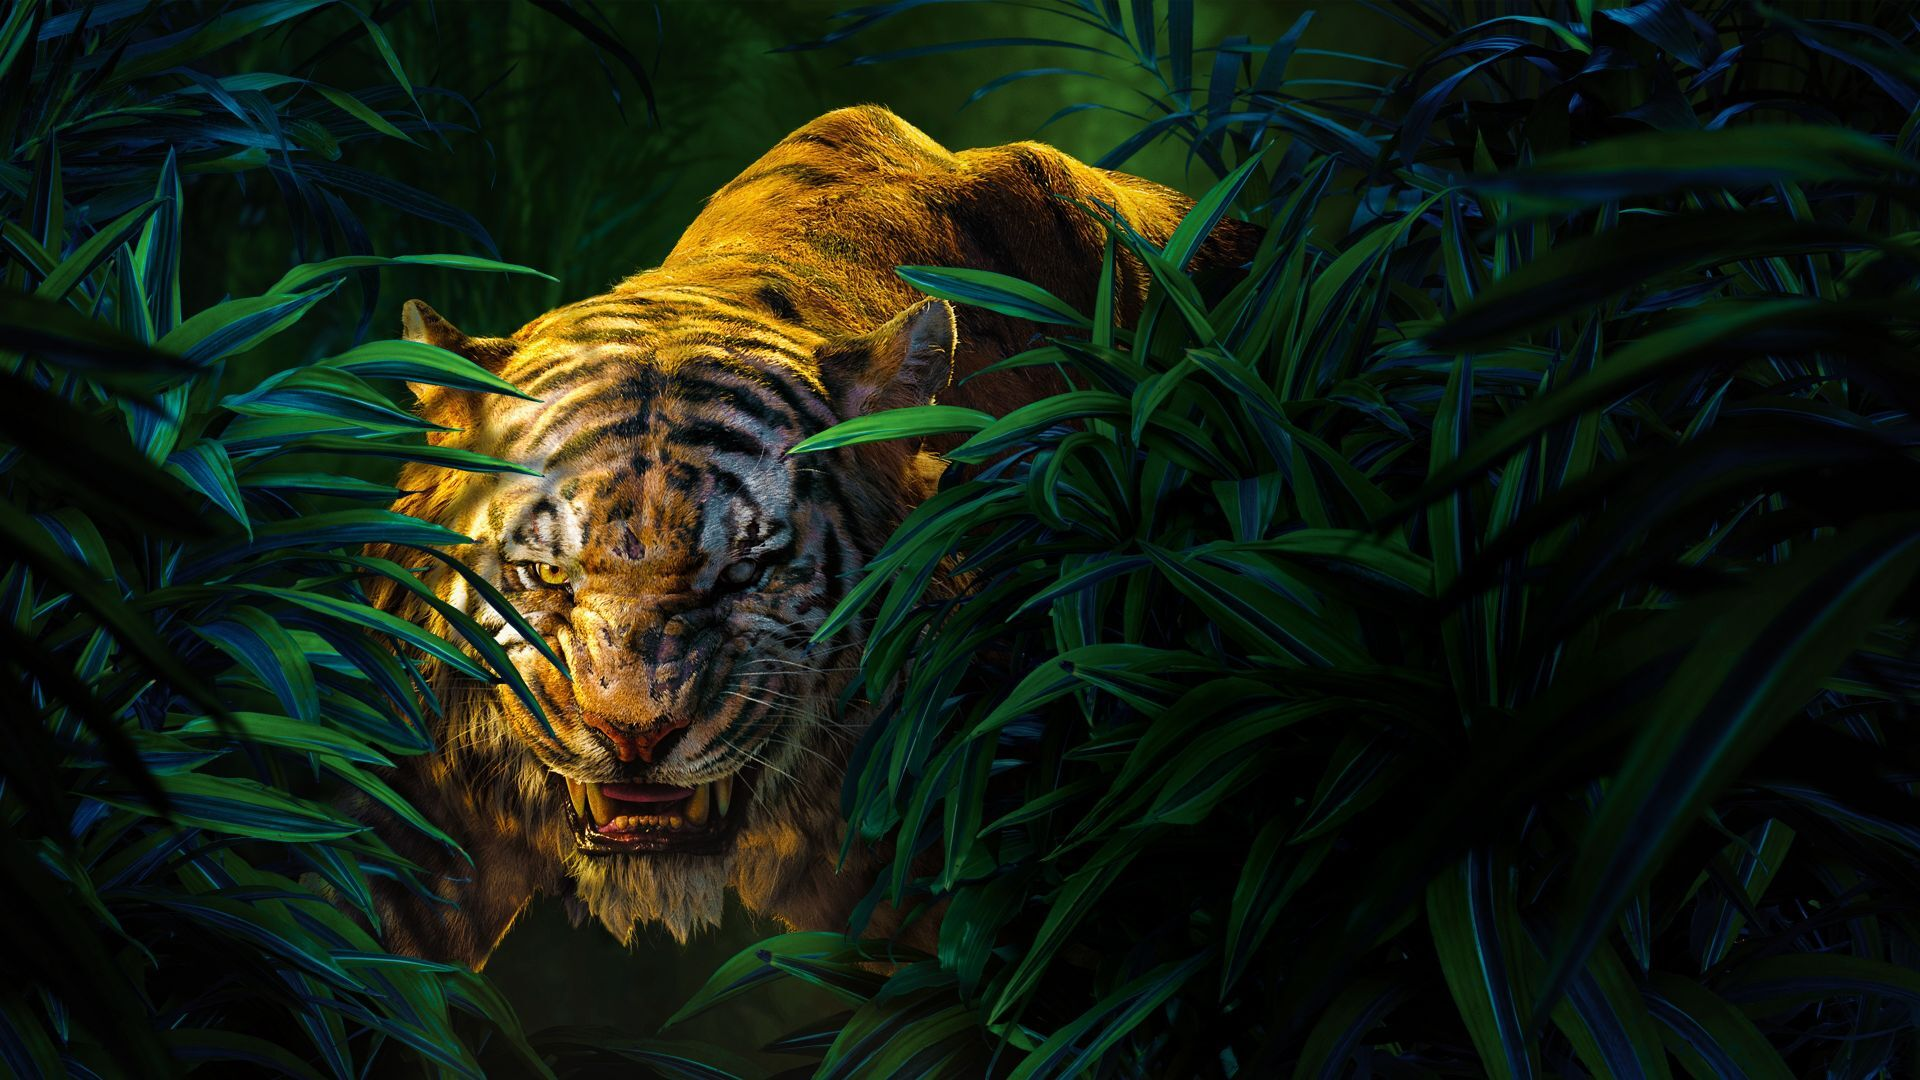 1920x1080 Shere Khan The Jungle Book Movie Laptop Full Hd 1080p Hd